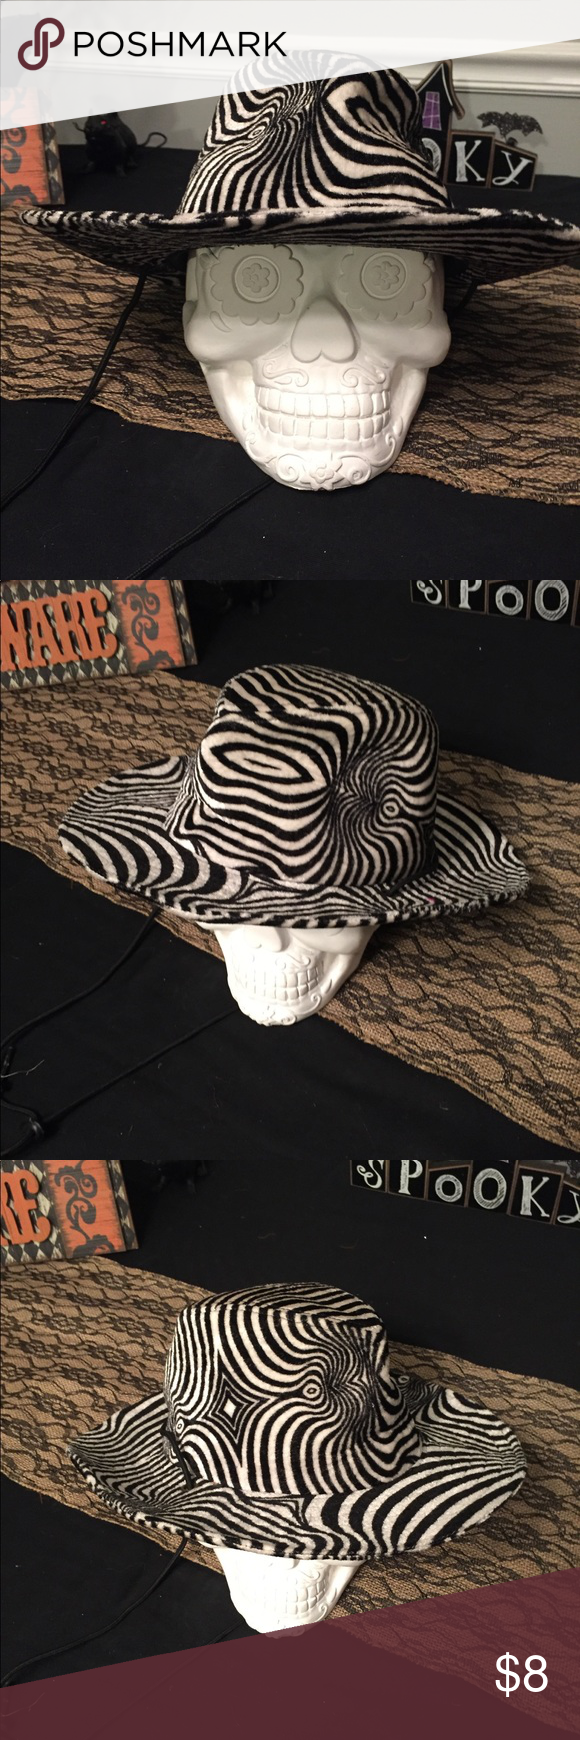 Halloween Costume Hat Zebra Print One size Halloween Costume Hat. Zebra  print with drawstring. Perfect for a gangster or space cowboy costume. 45d8147e17a